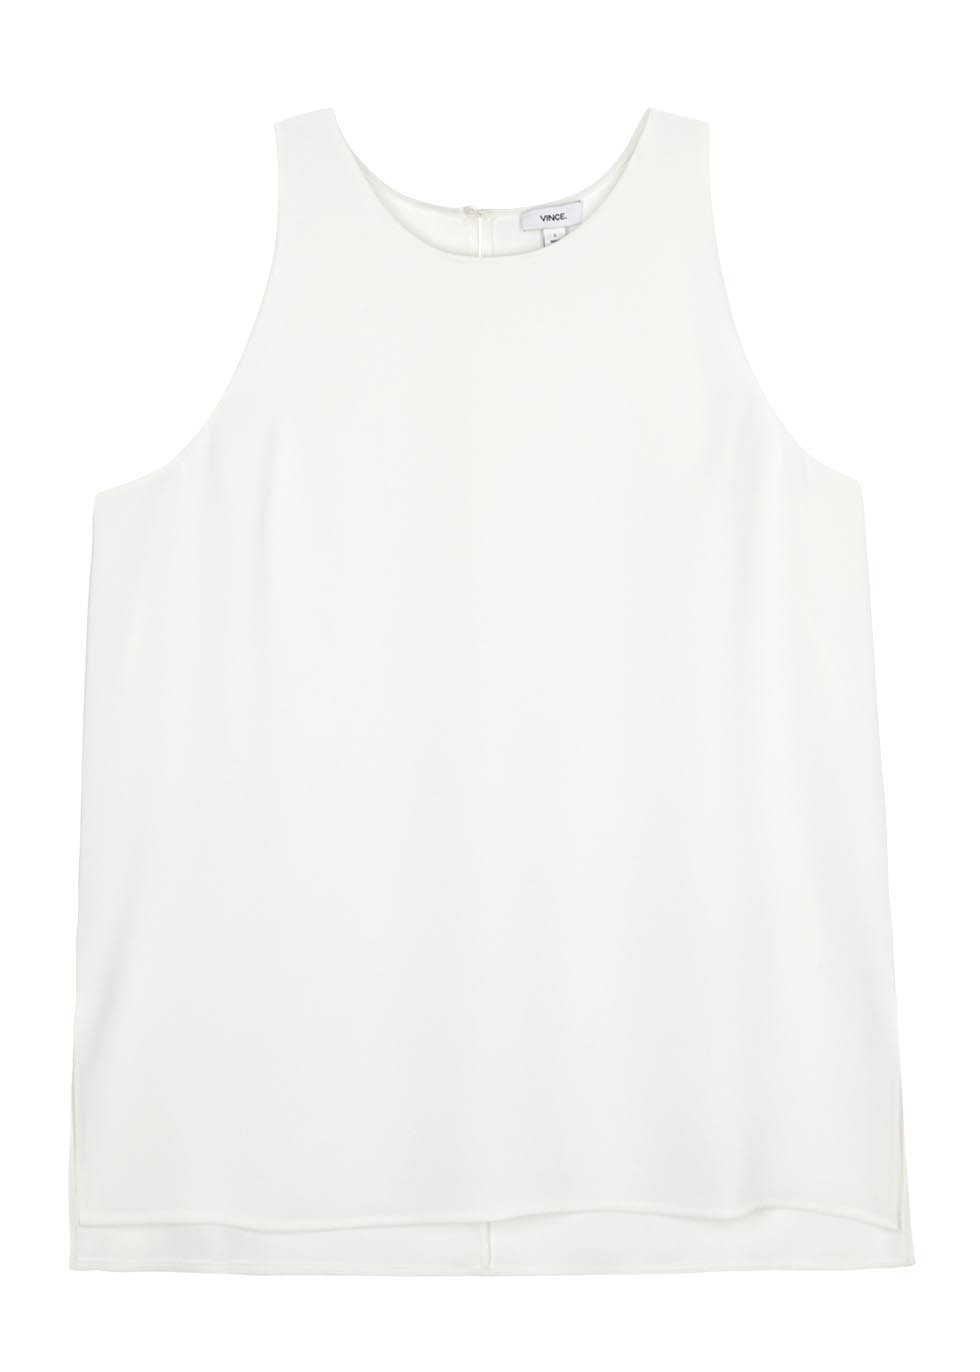 White Crepe Tank - neckline: round neck; pattern: plain; sleeve style: sleeveless; style: vest top; predominant colour: white; occasions: casual; length: standard; fibres: polyester/polyamide - 100%; fit: body skimming; sleeve length: sleeveless; texture group: crepes; pattern type: fabric; season: s/s 2016; wardrobe: basic